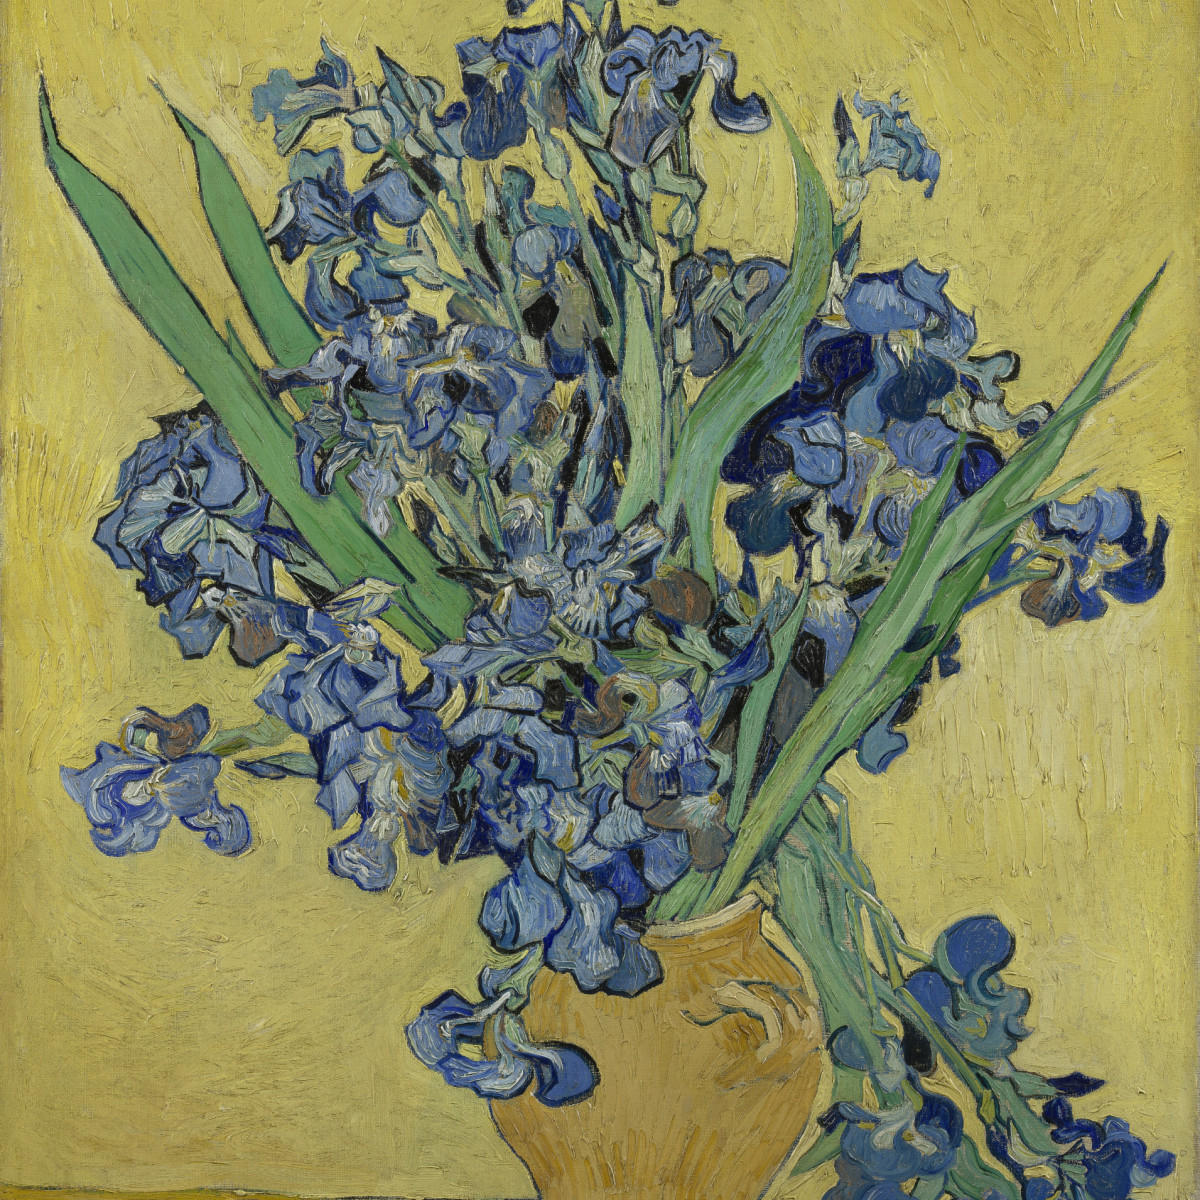 MFAH:Vincent van Gogh: His Life in Art, Irises